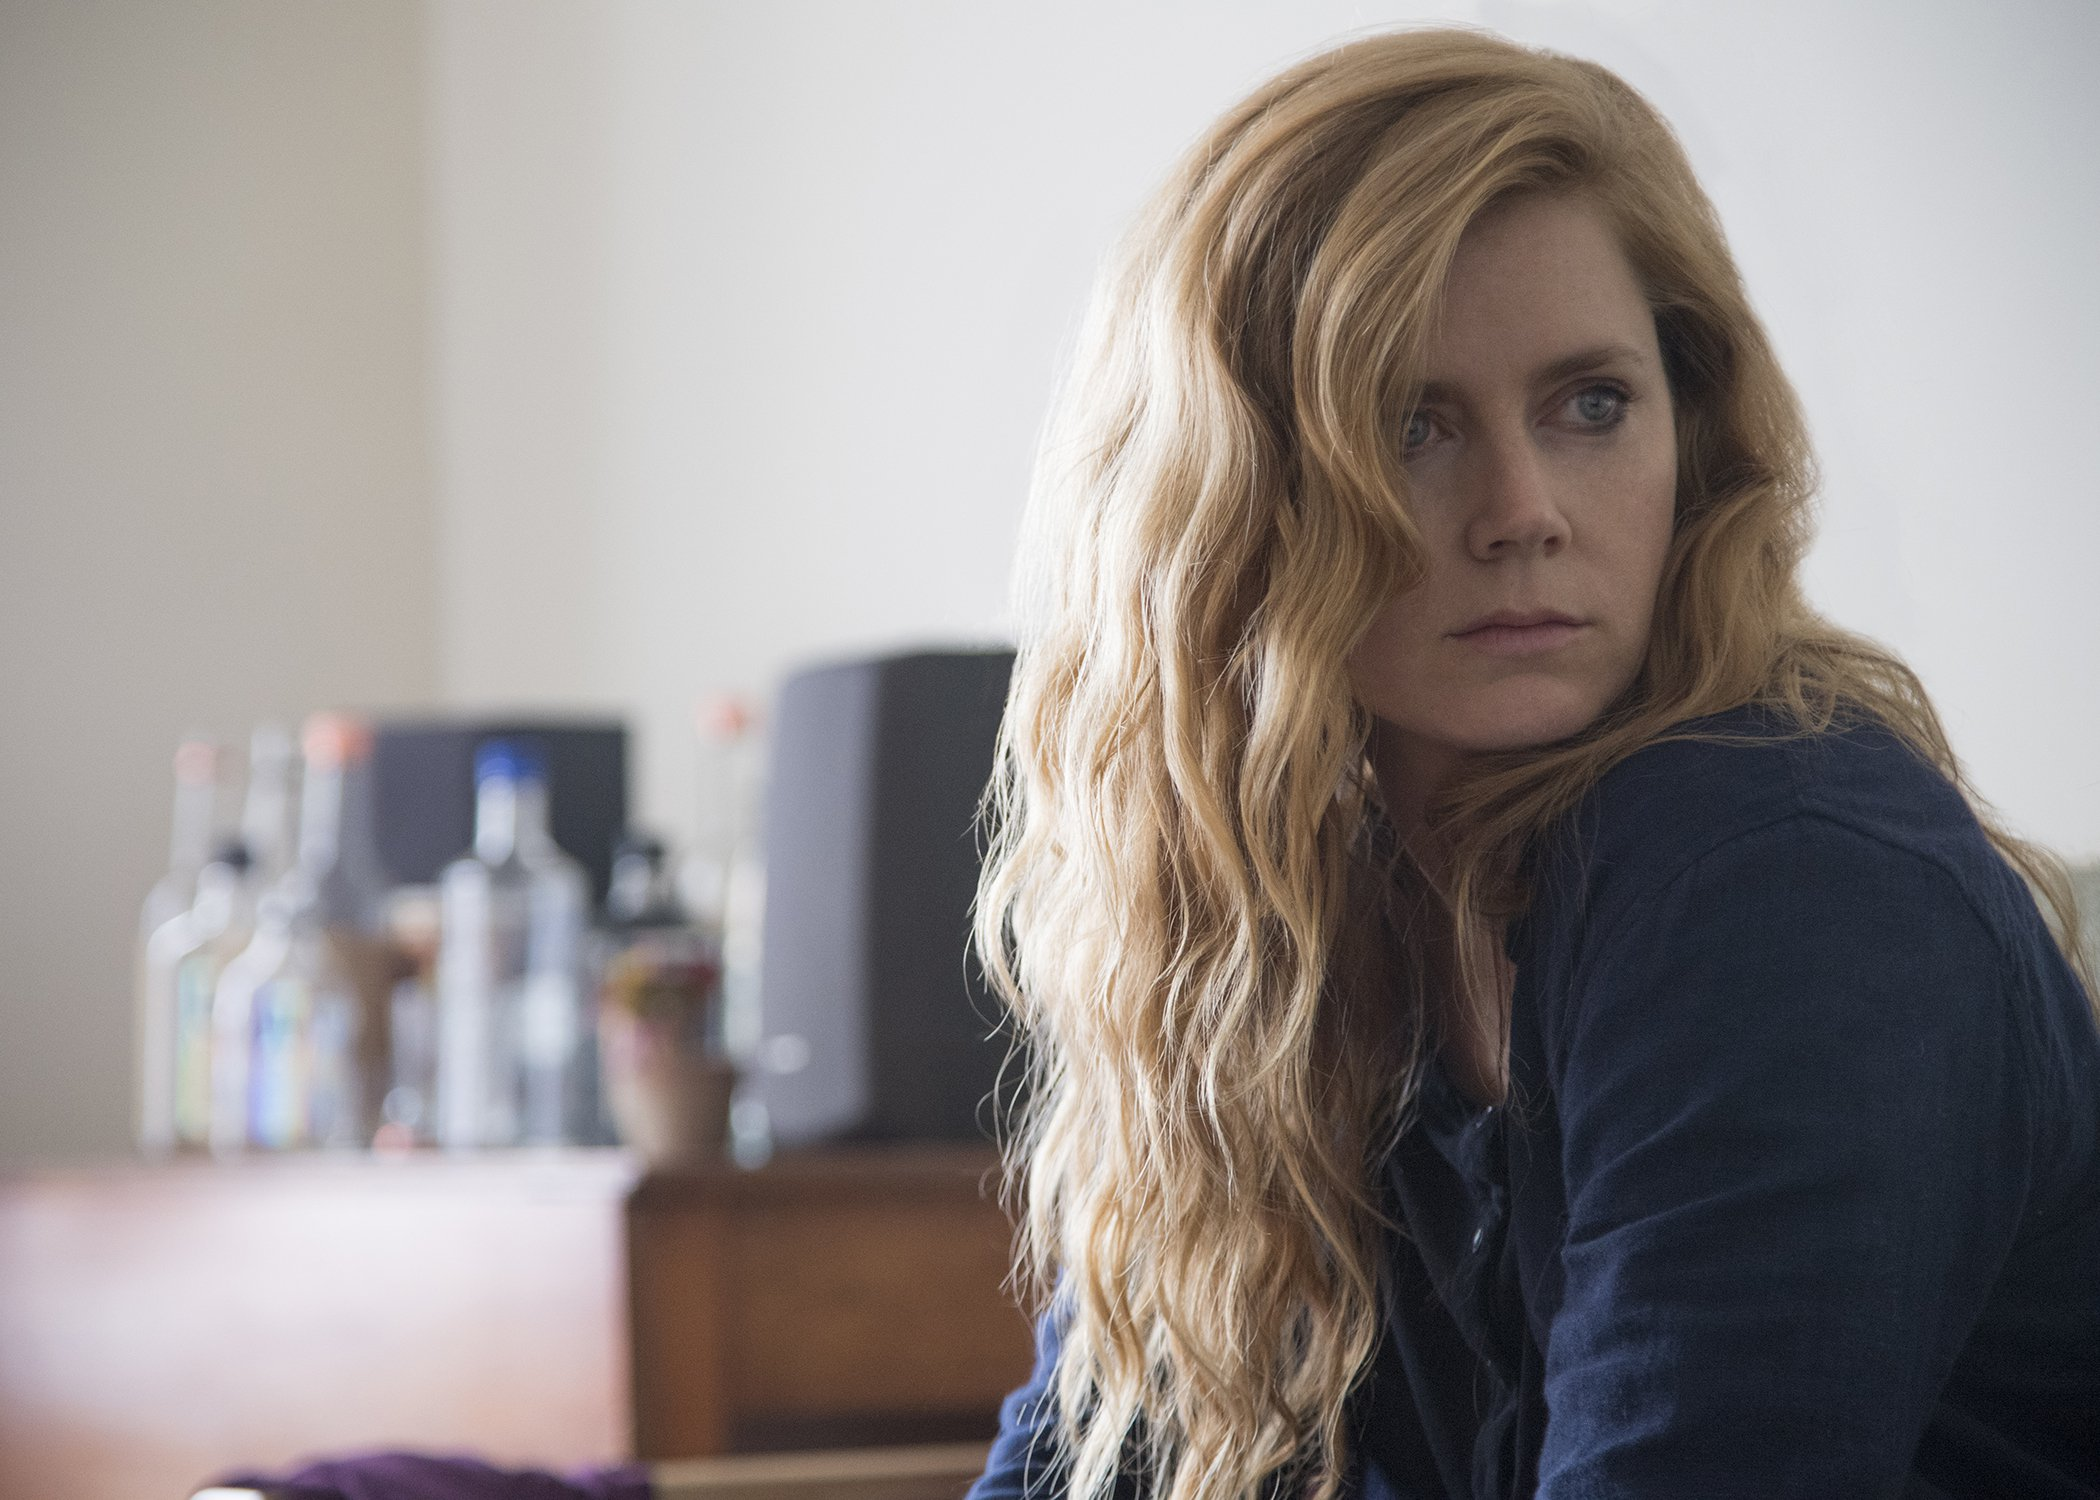 Sharp Objects cast, plot, original novel and where to watch it in the UK